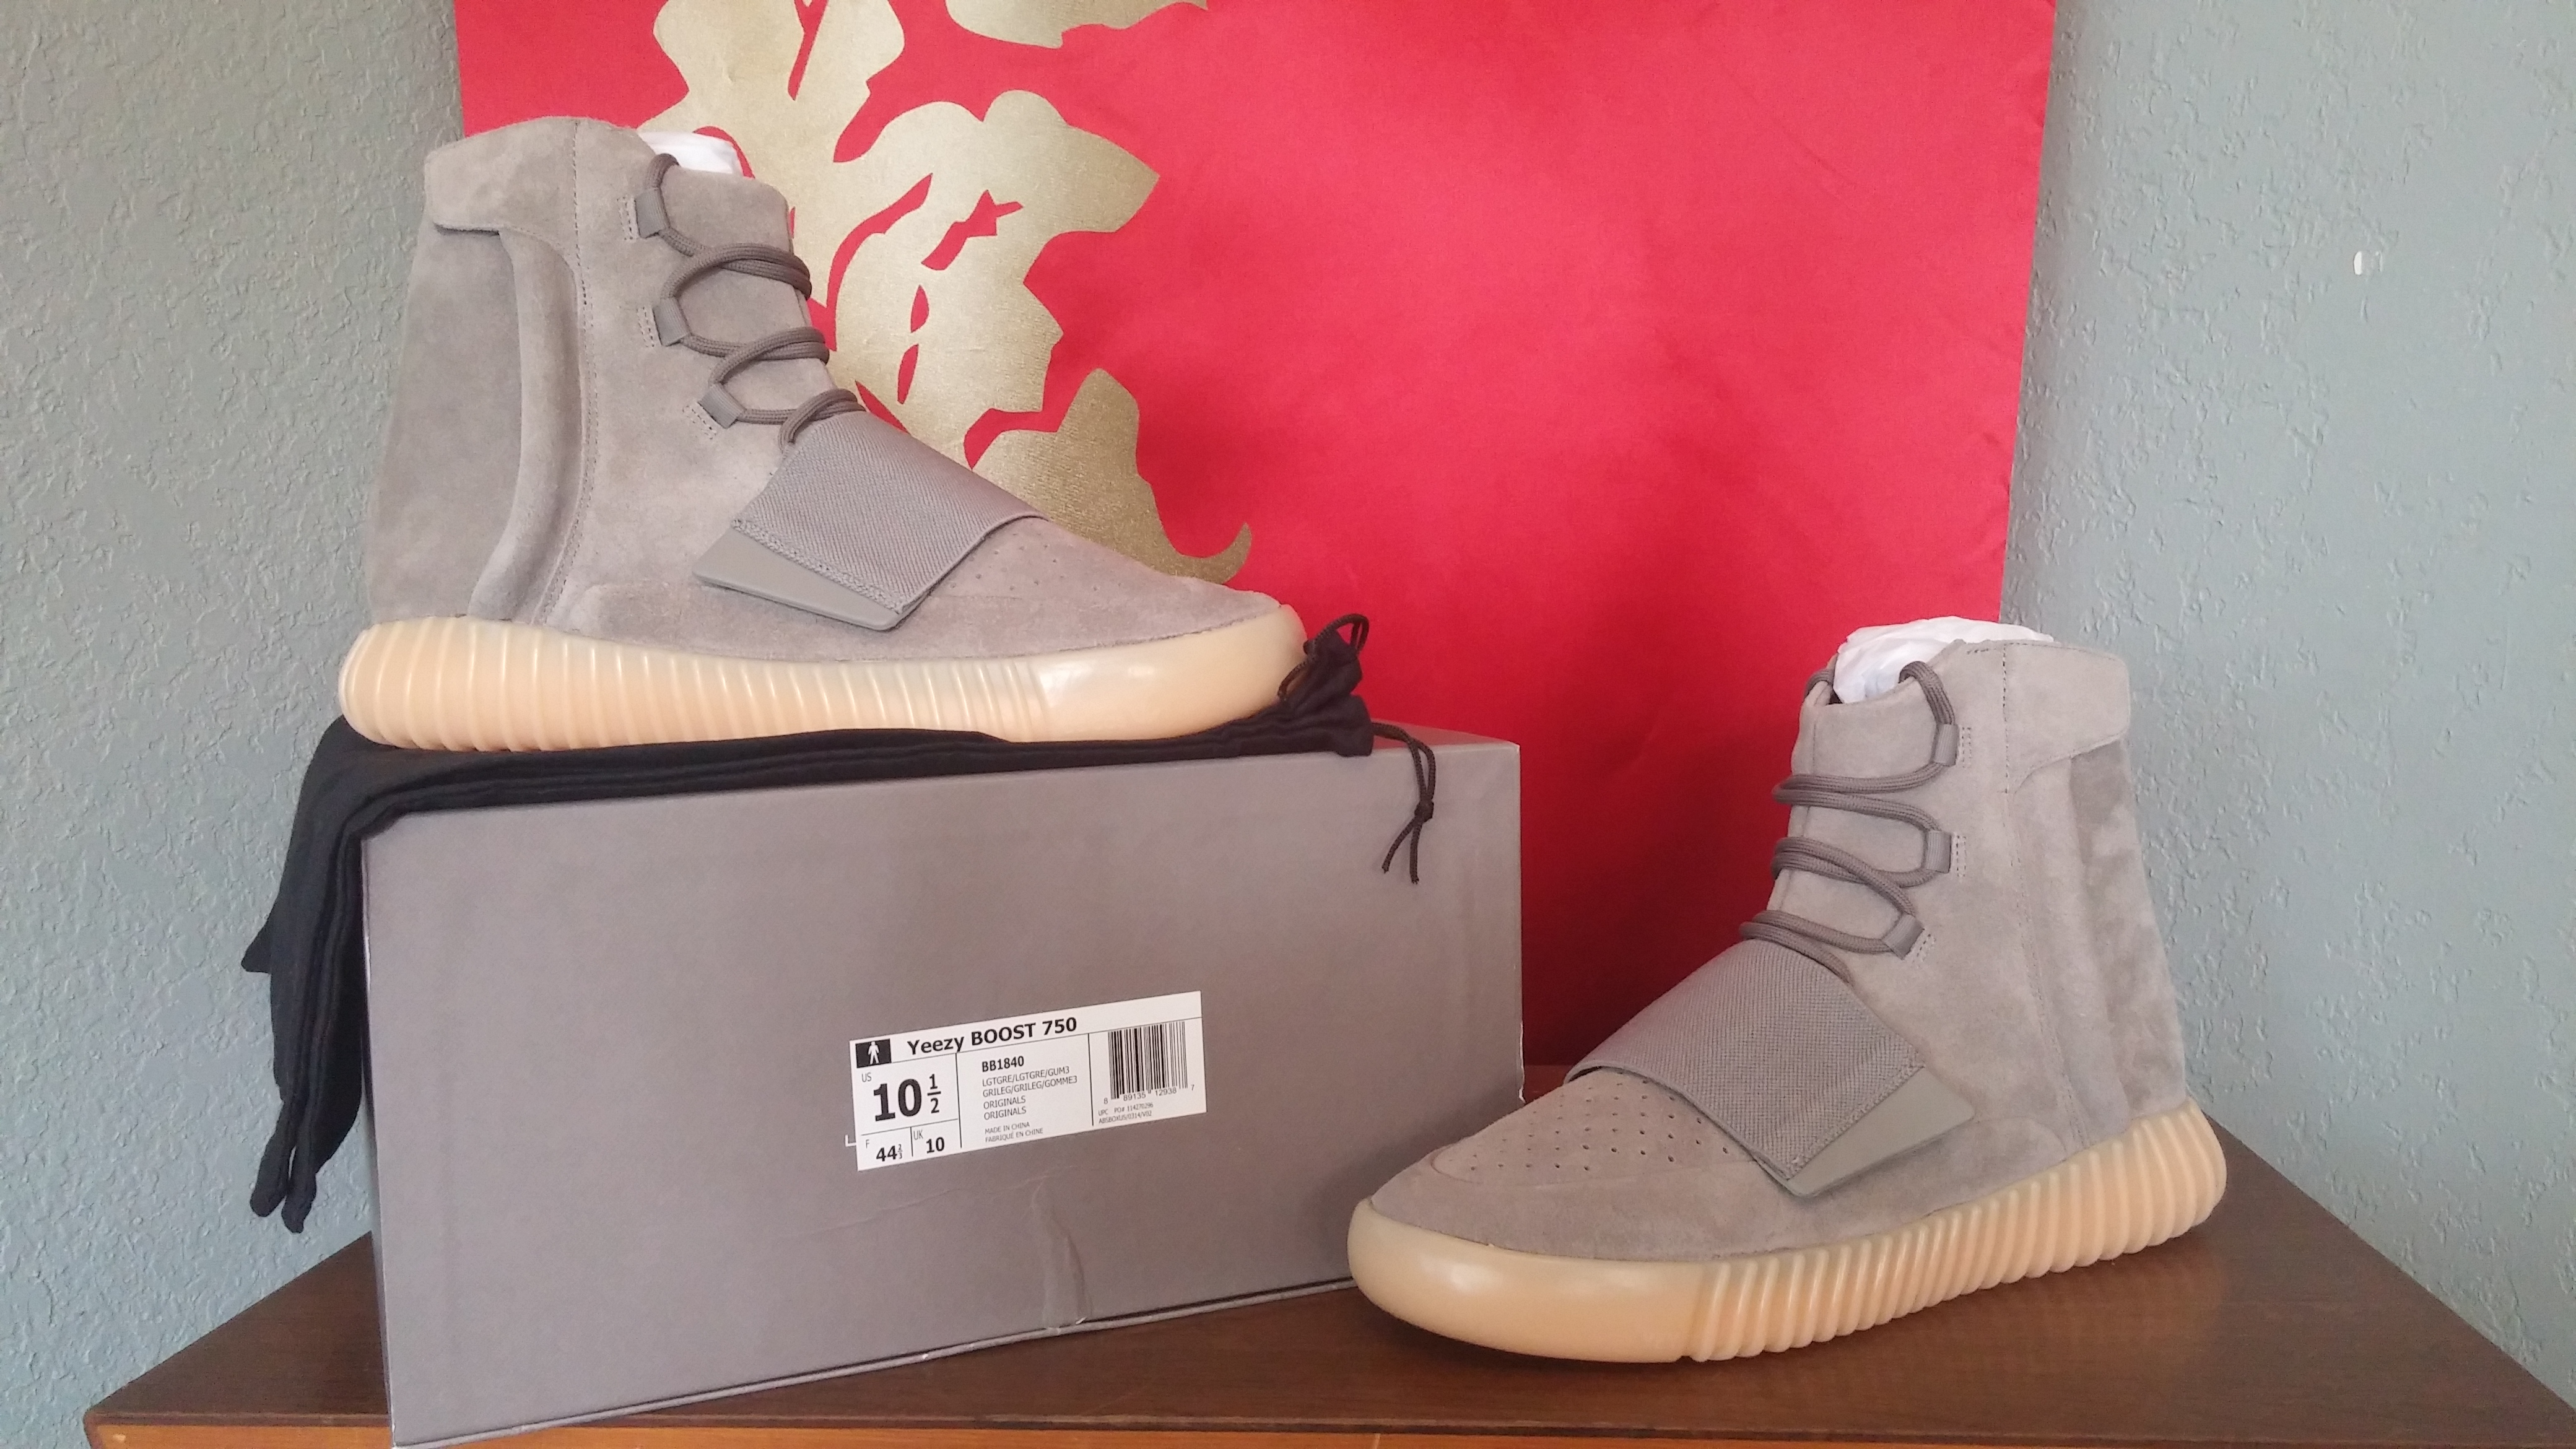 c413ad1635eb Adidas Yeezy Boost 750 Grey Gum Size 10.5 - for Sale - Grailed